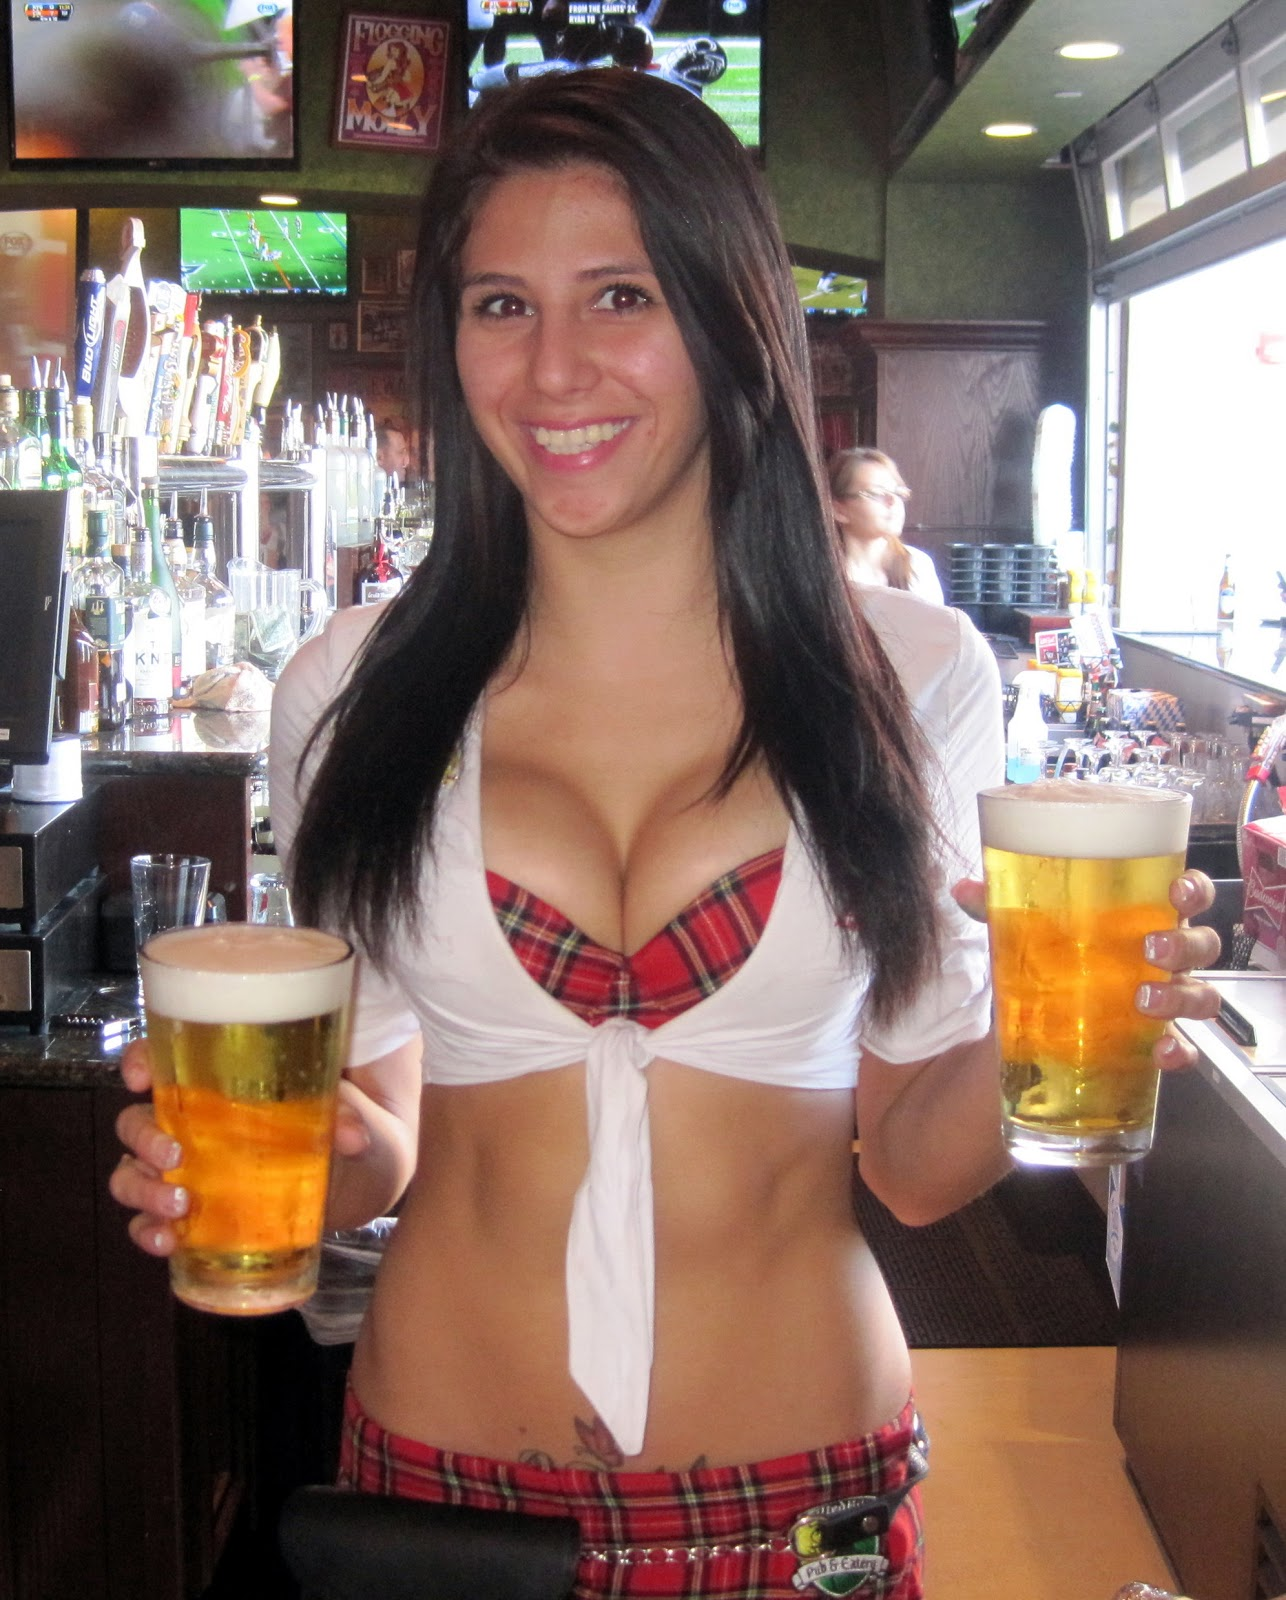 Beneath the Tilted Kilt